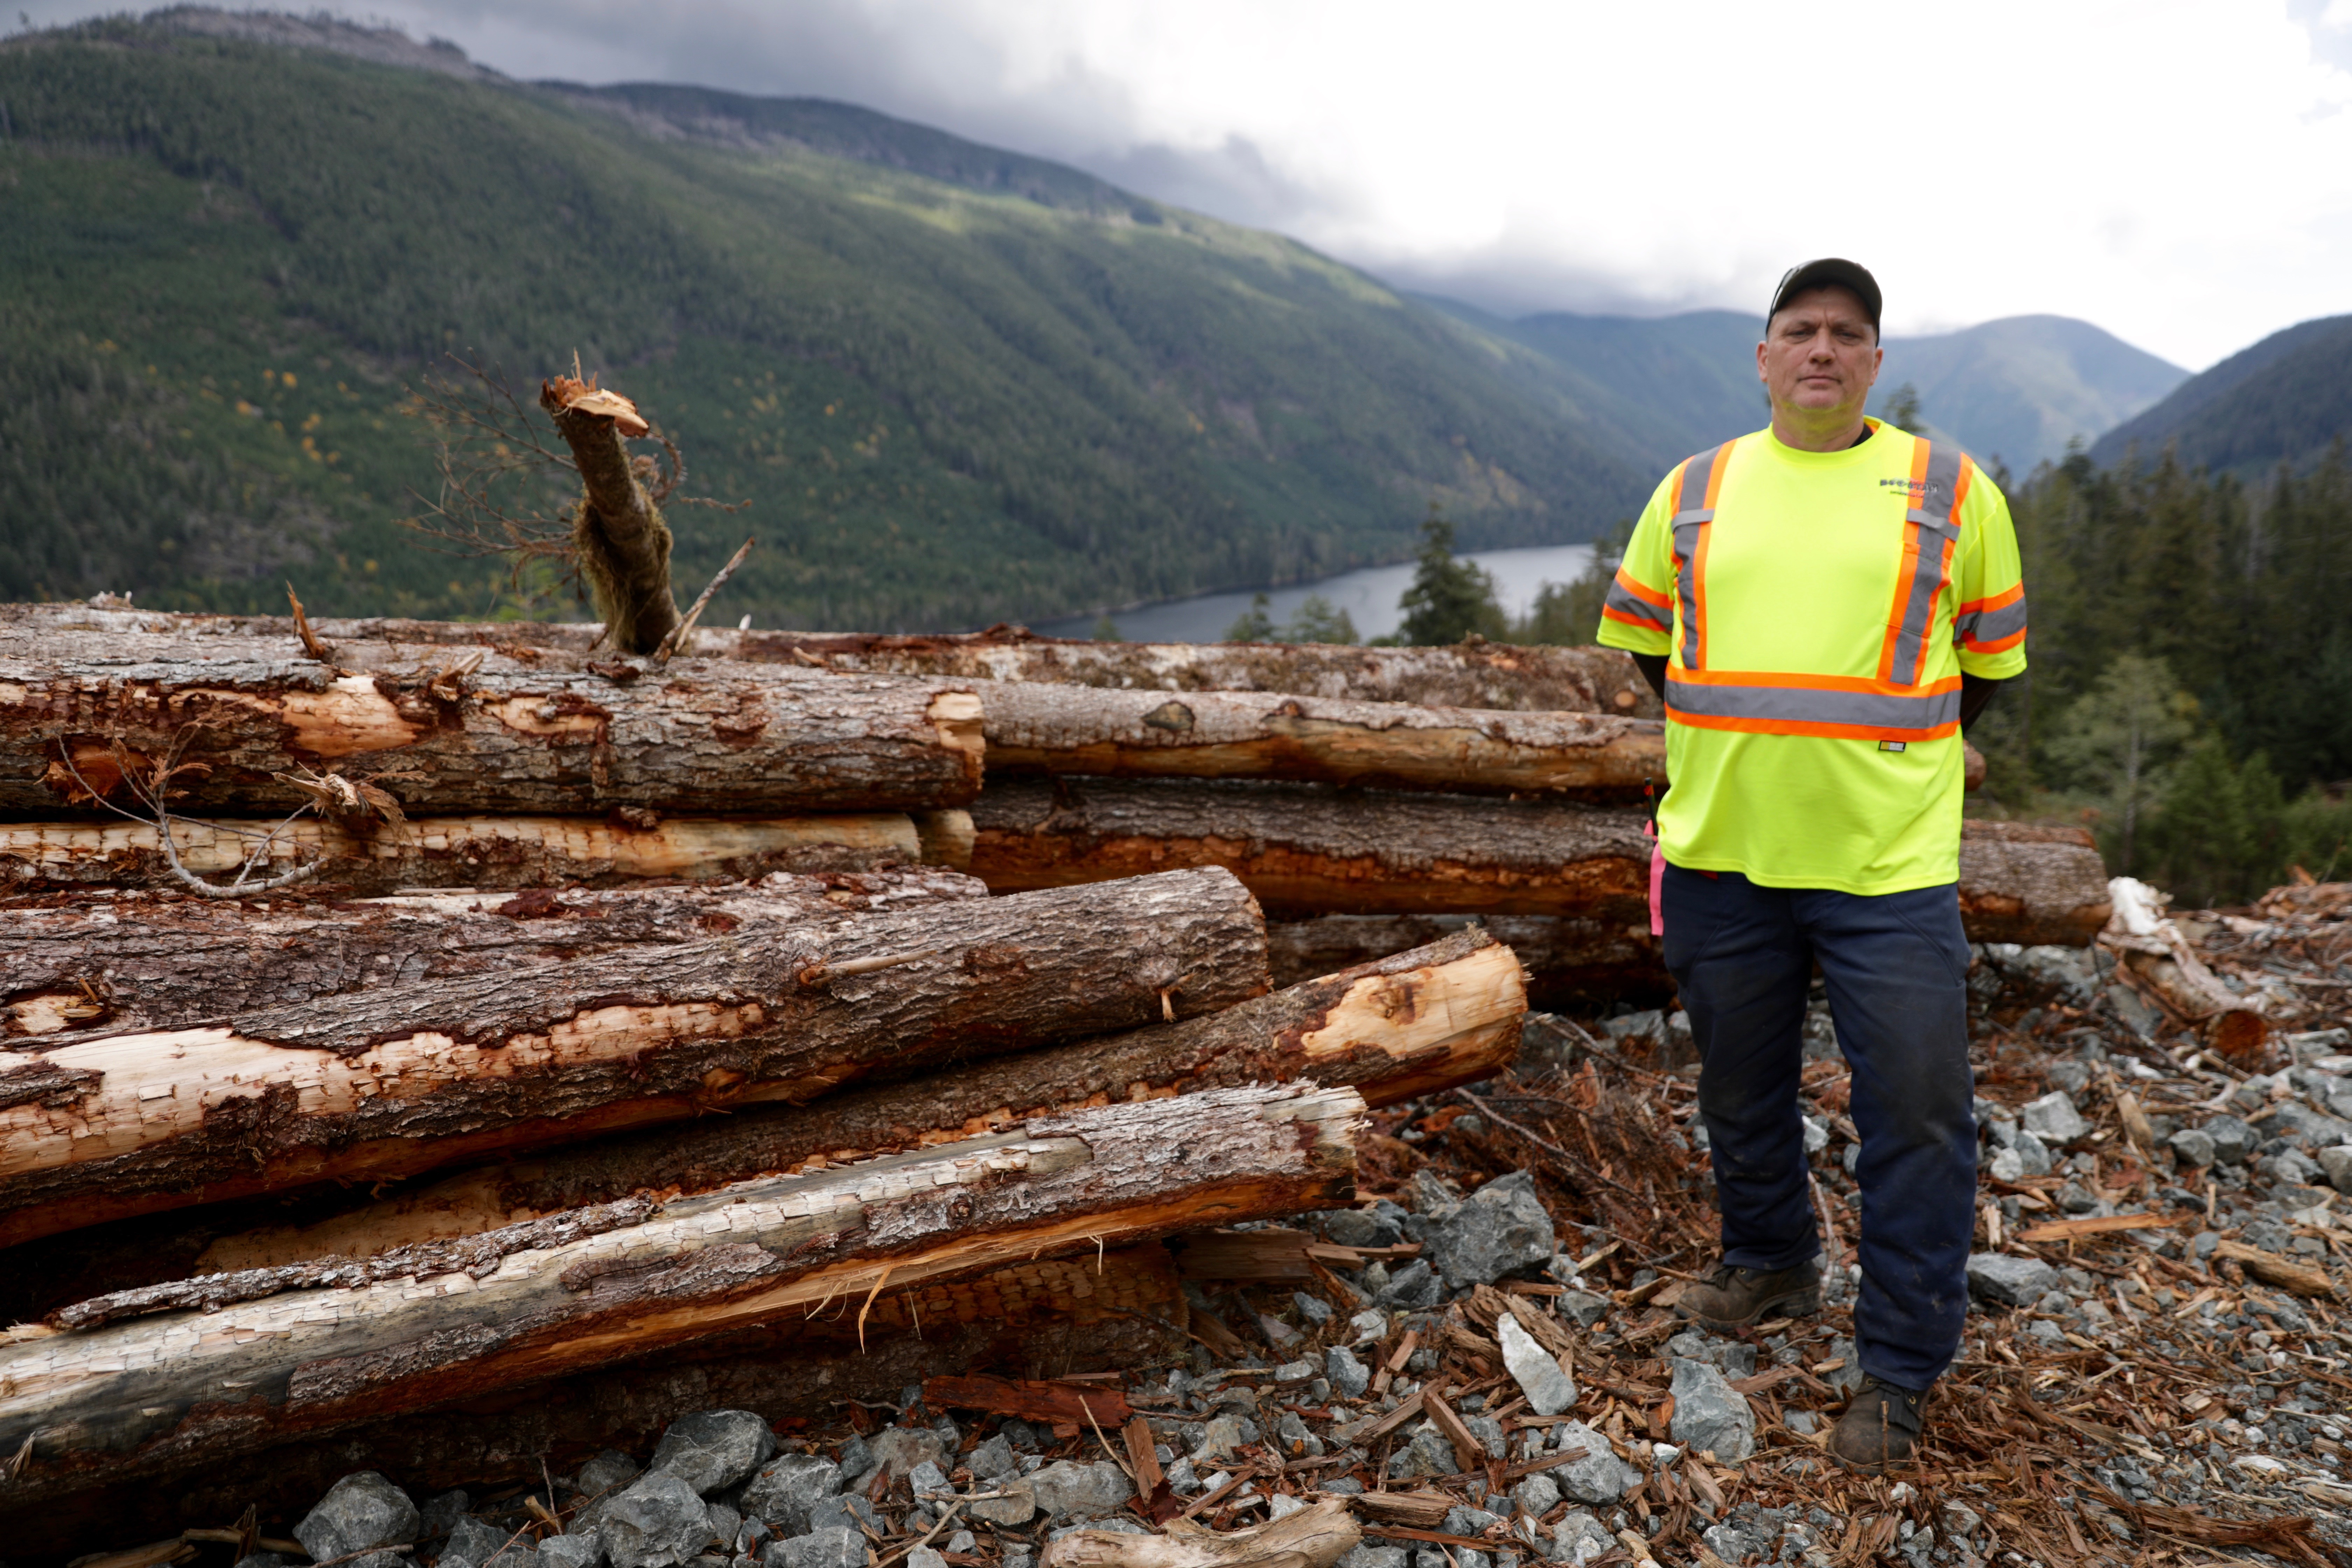 Zoltan Schafer has been logging in B.C. since he was 14. He says a lot has changed in the industry since the 1970s to protect old growth. (Chris Corday/CBC)